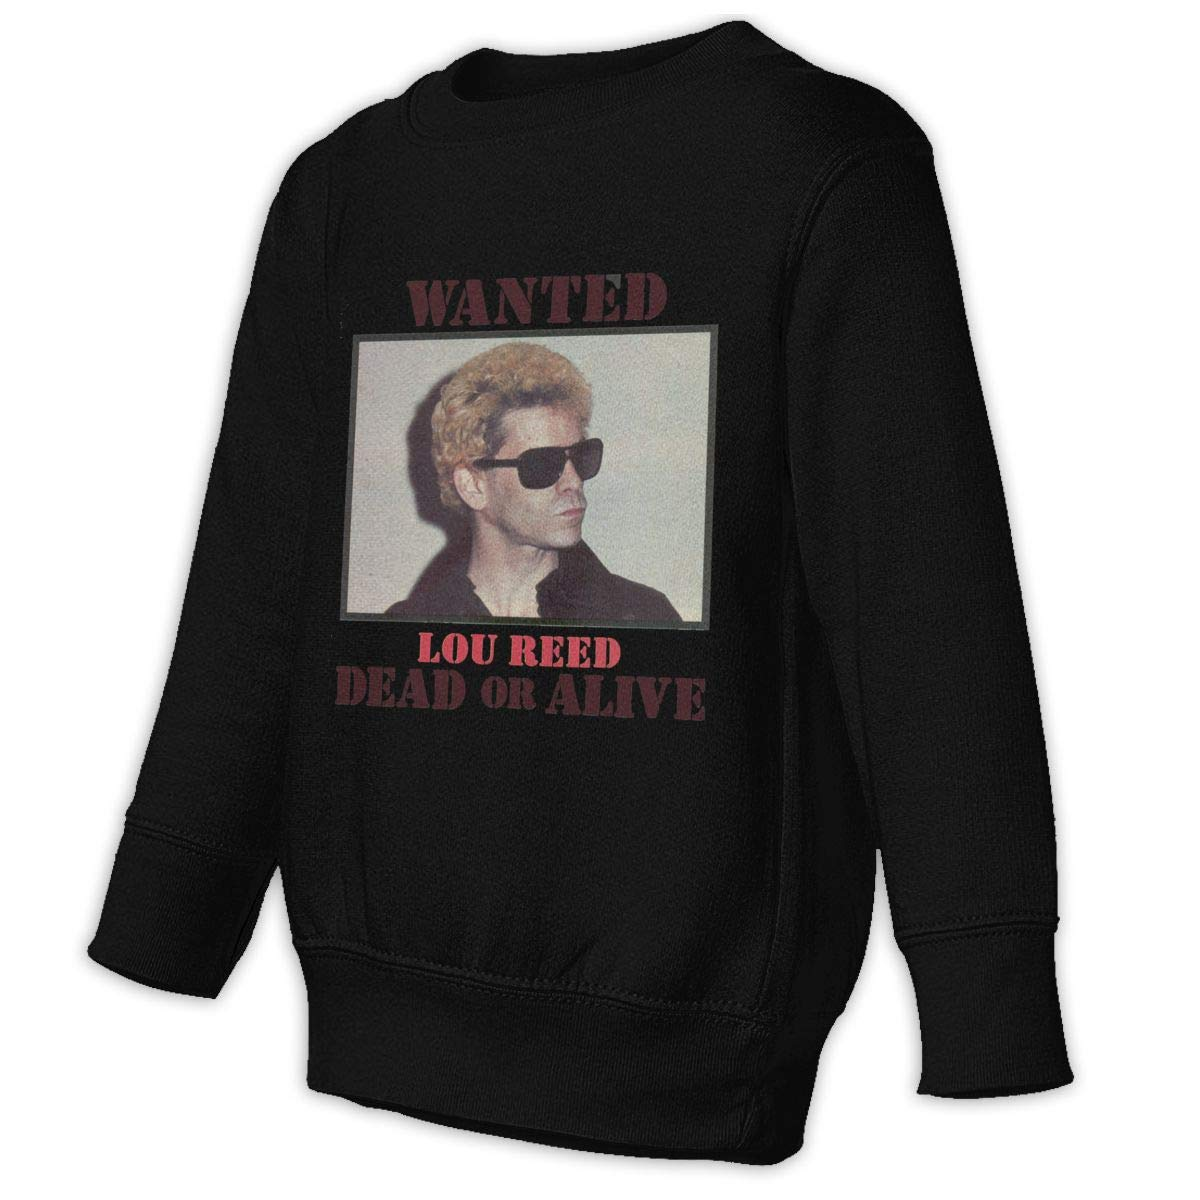 Lou Reed Boys Unisex Sweatshirt Cool Long Sleeve Graphics Printing Shirts Black